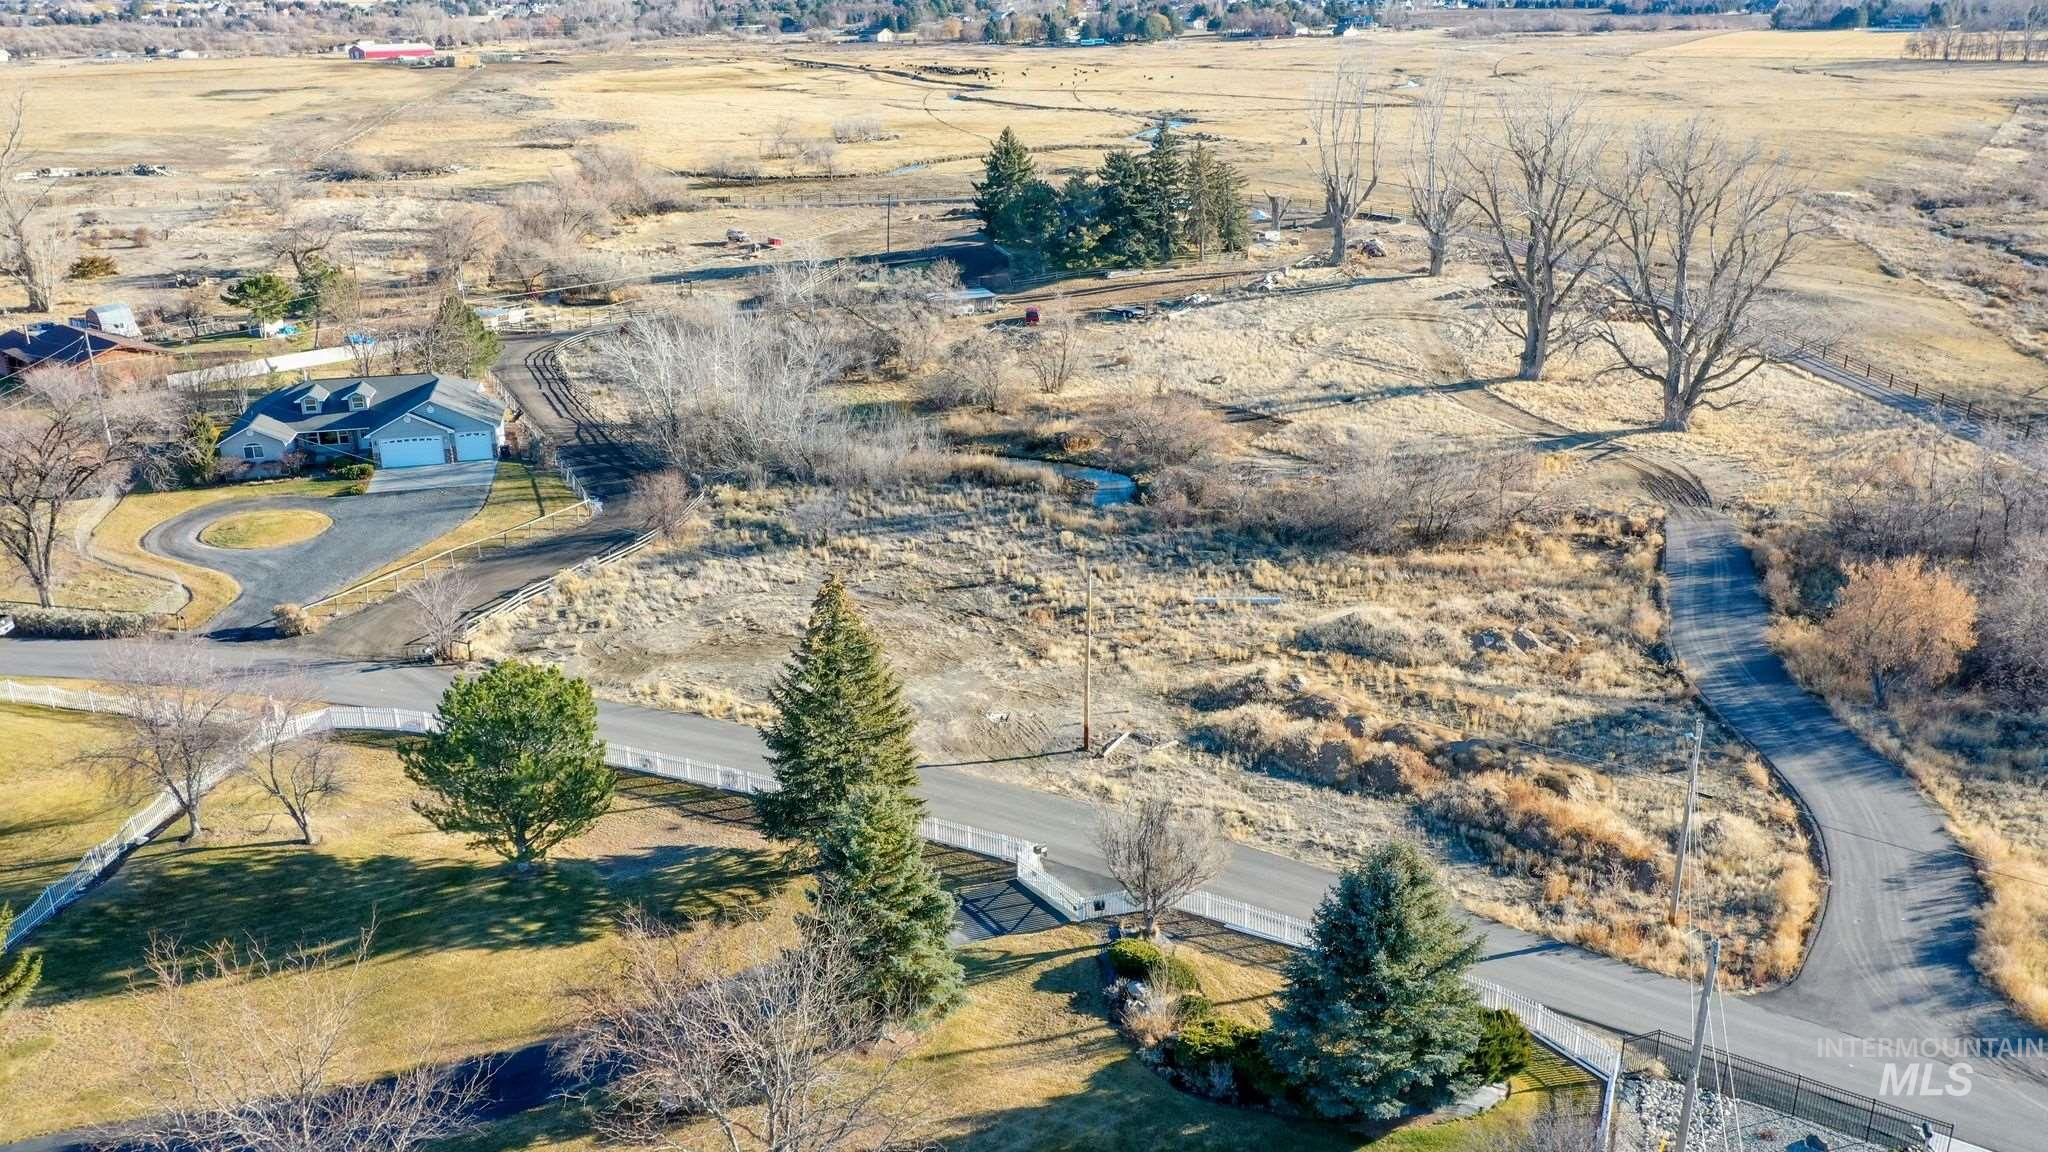 2484 E Pole Line Road, Twin Falls, Idaho 83301, Land For Sale, Price $169,900, 98790589